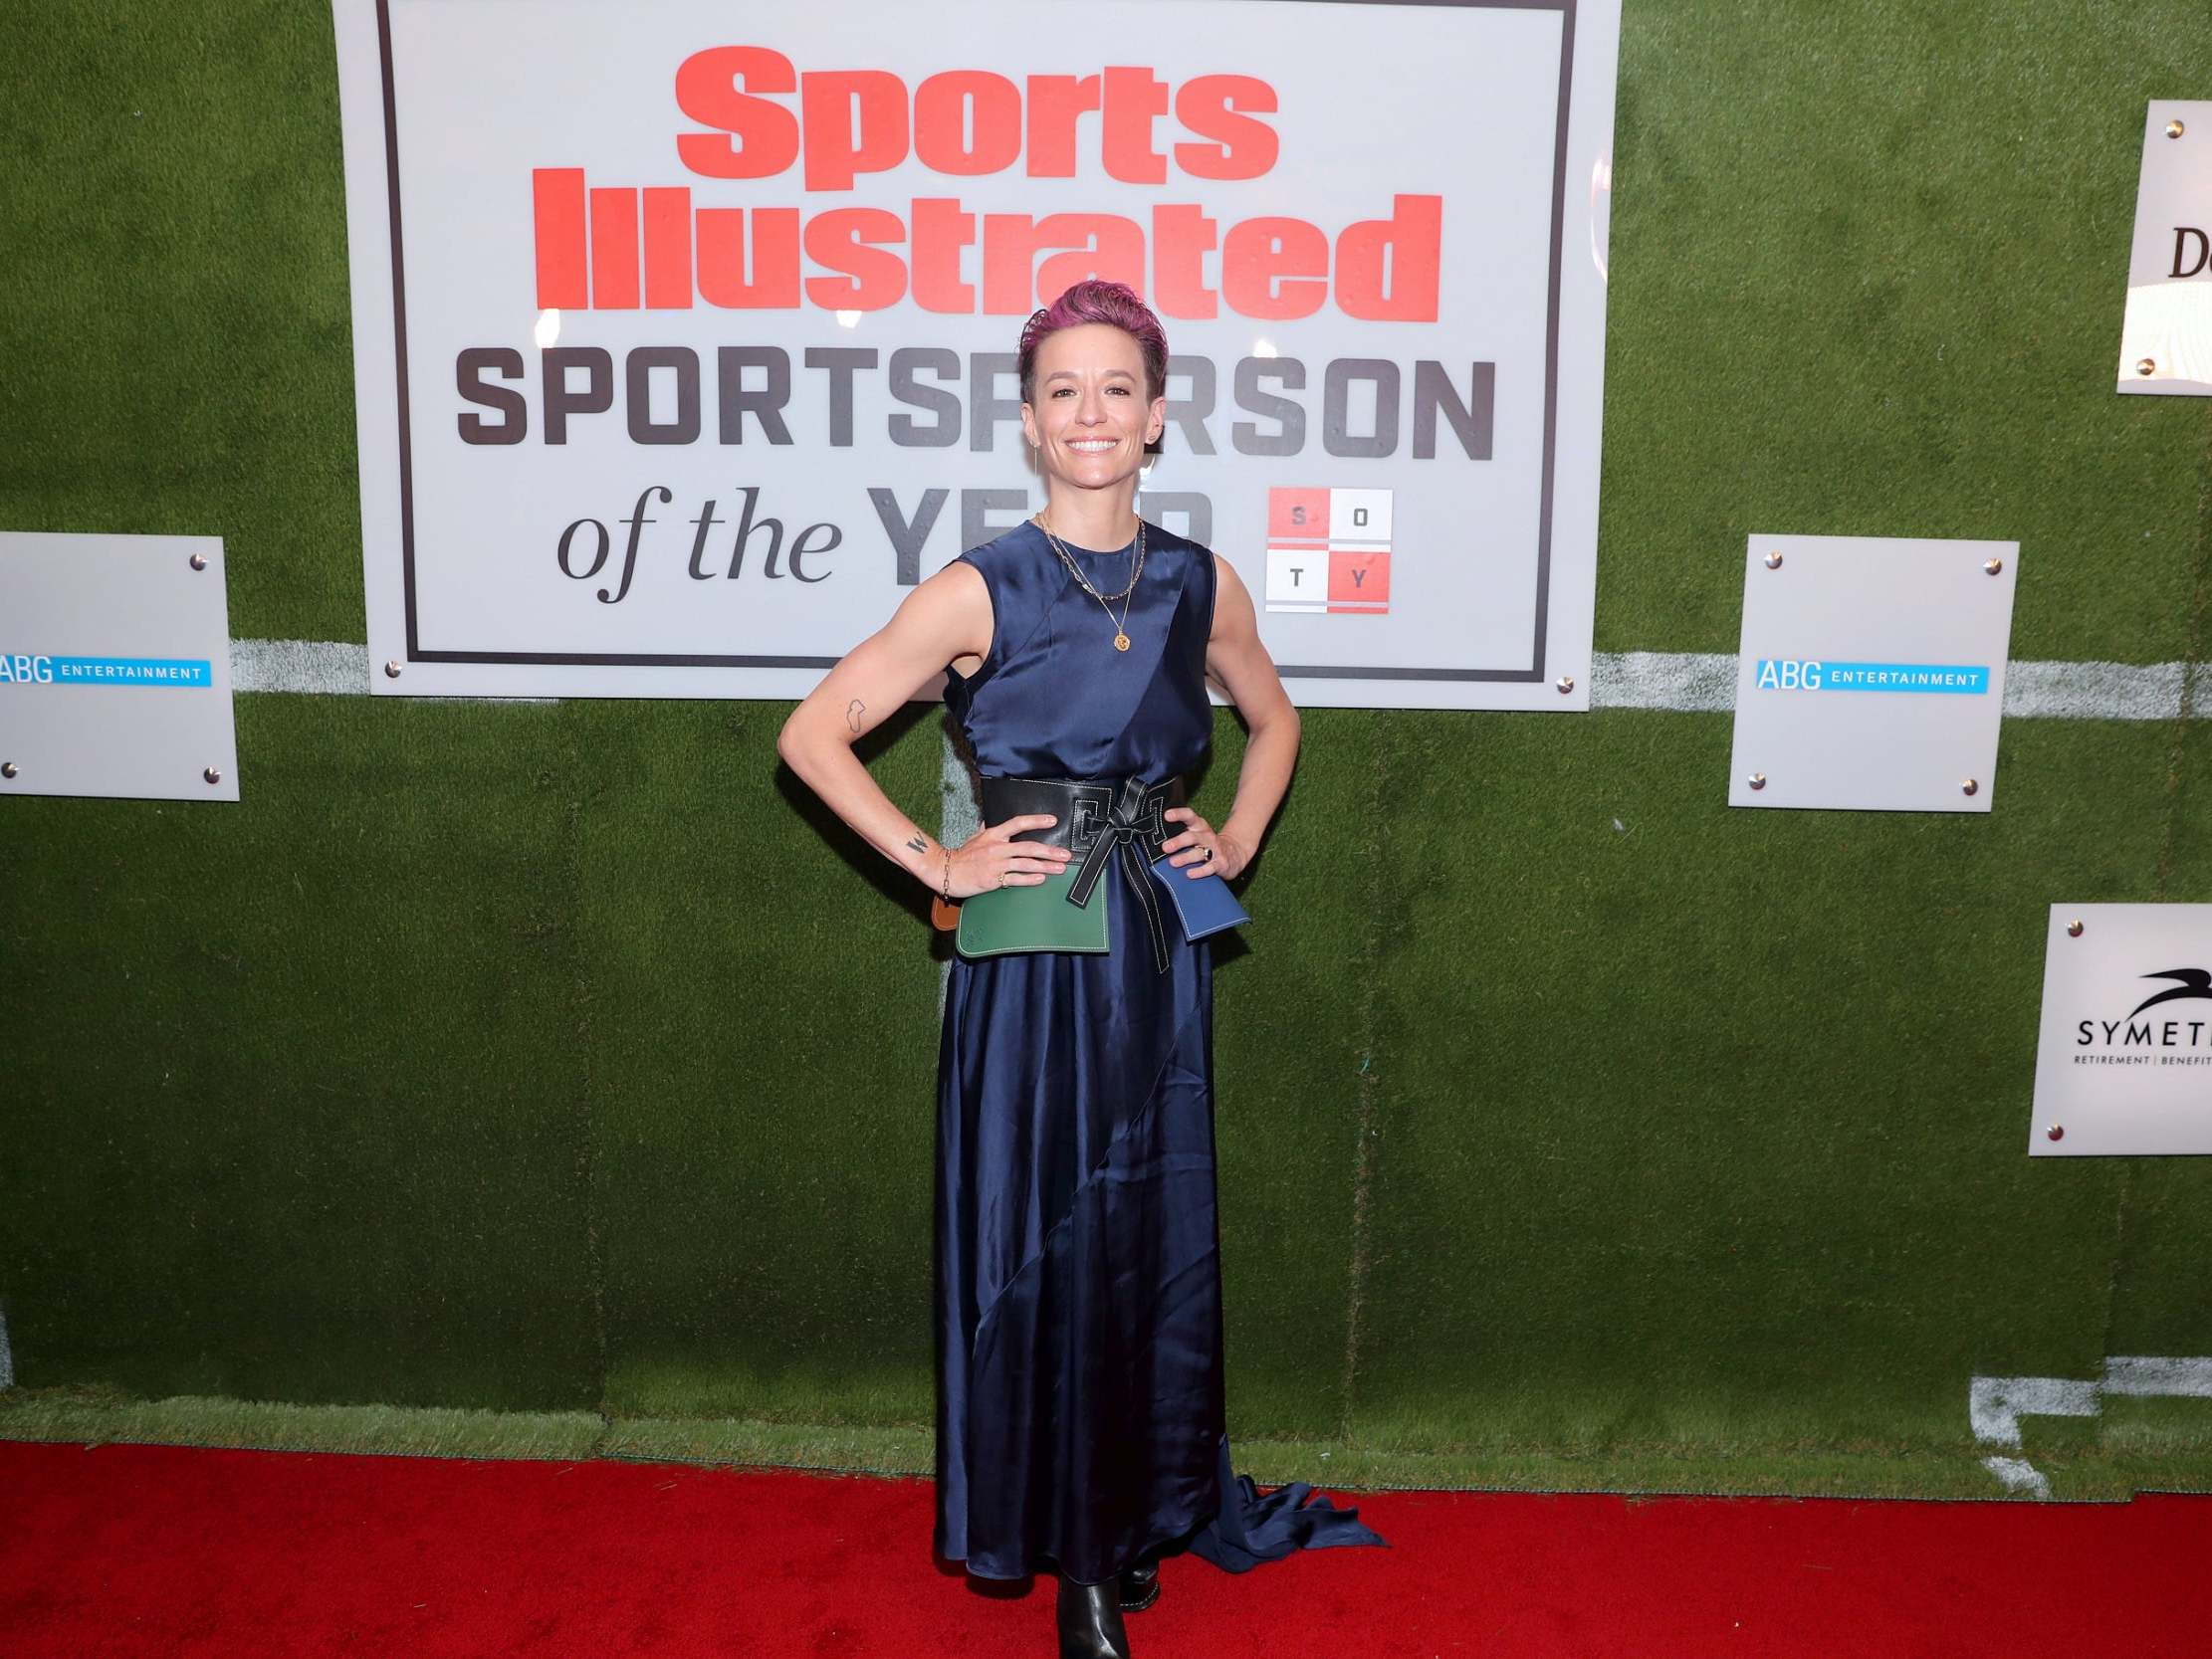 Megan Rapinoe named Sports Illustrated Sportsperson of the Year after achievements 'under attack by a world leader'